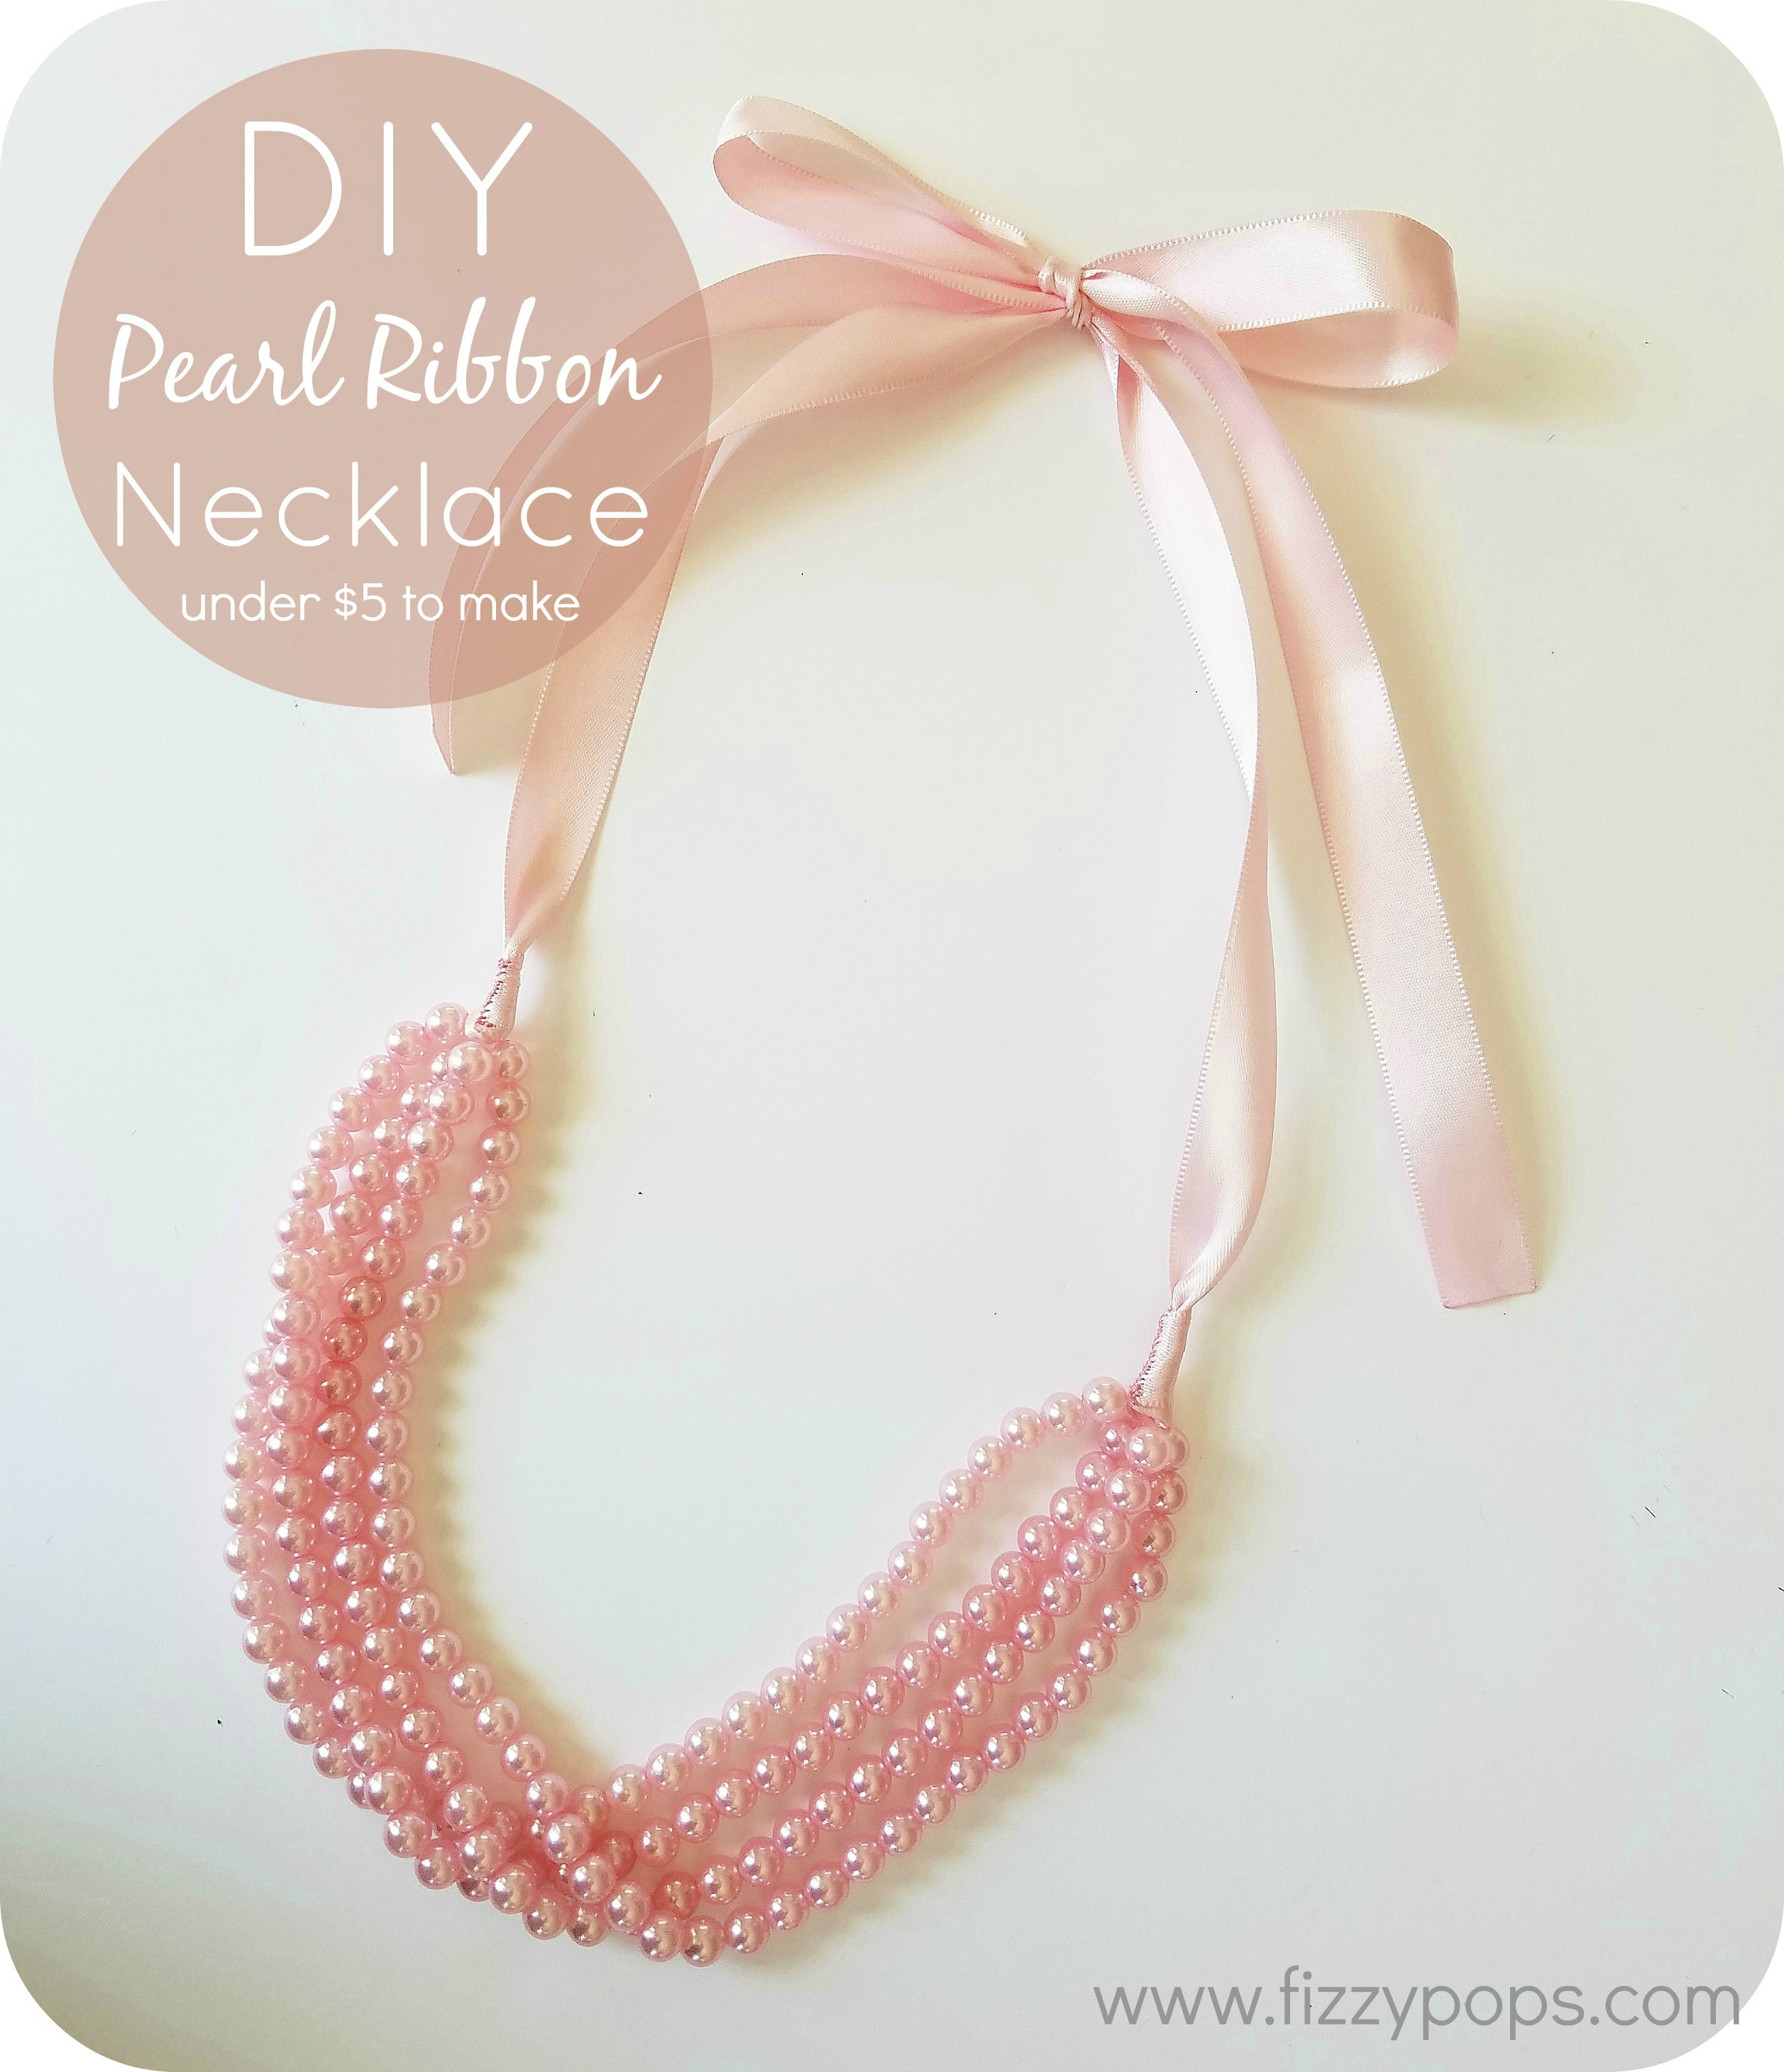 DIY Pearl Ribbon Necklace Tutorials (2 Styles) - Fizzy Pops